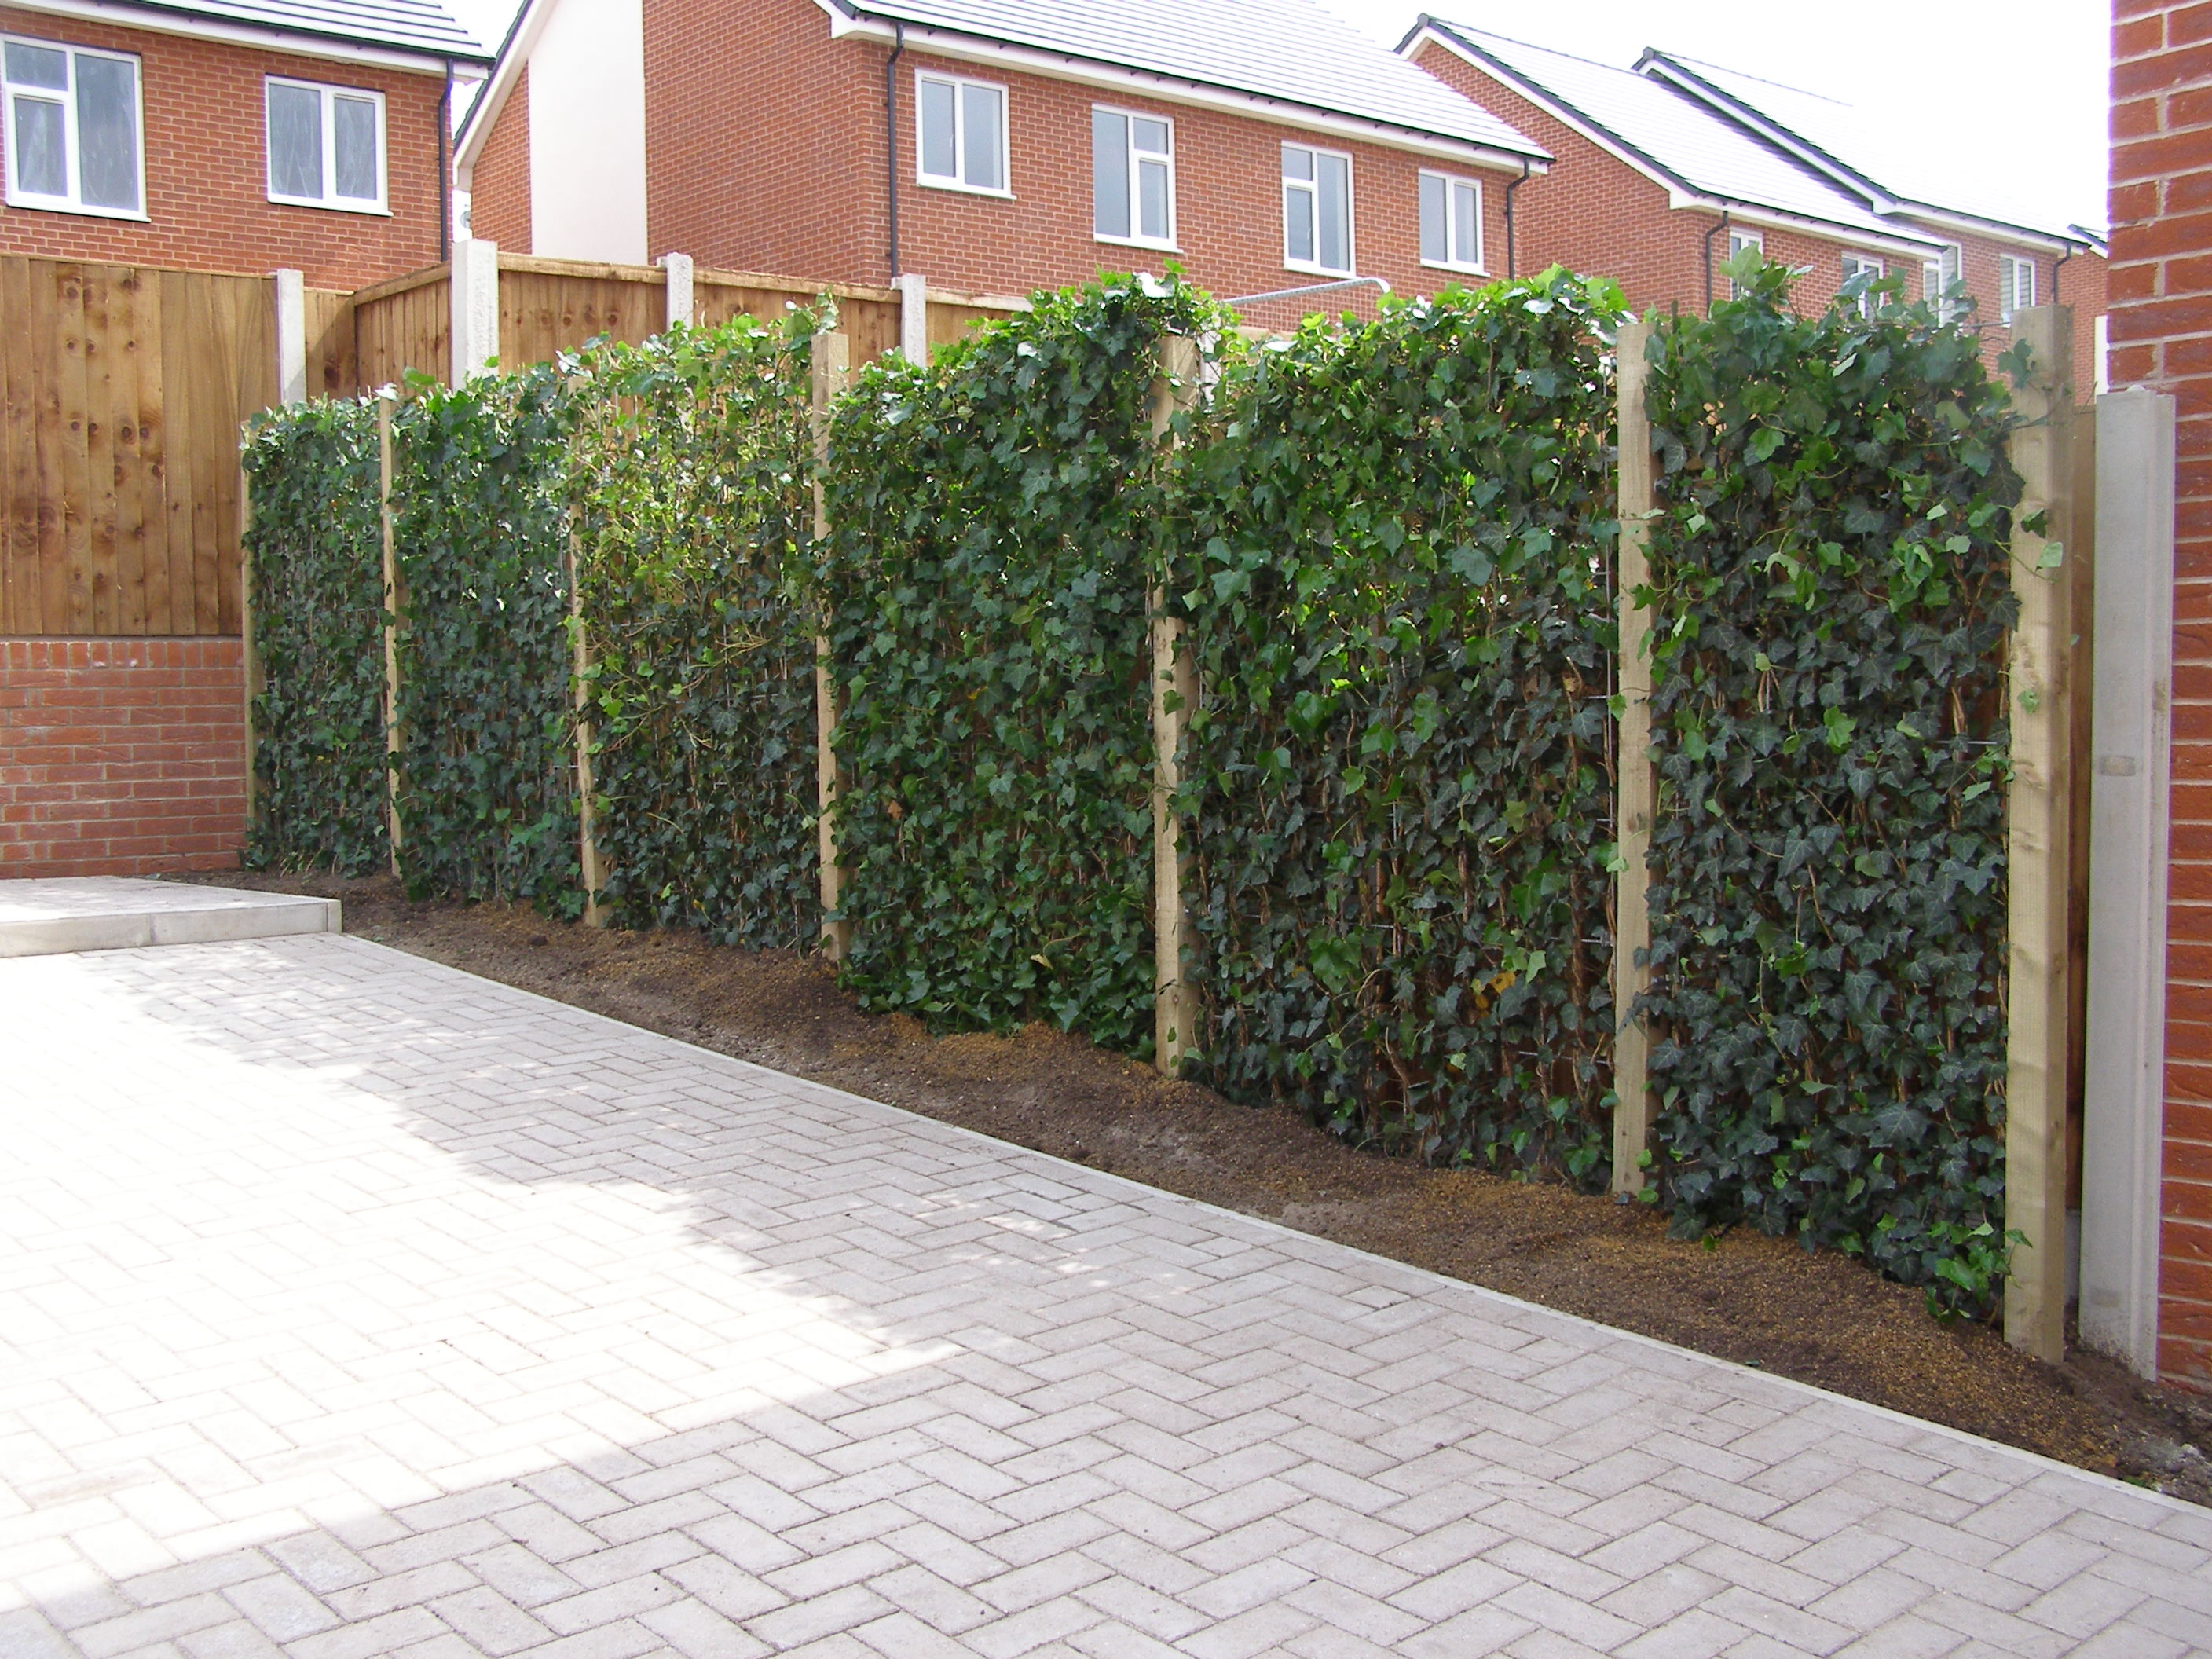 Euro fencing systems ltd gates fencing warrington cheshire technical information baanklon Choice Image